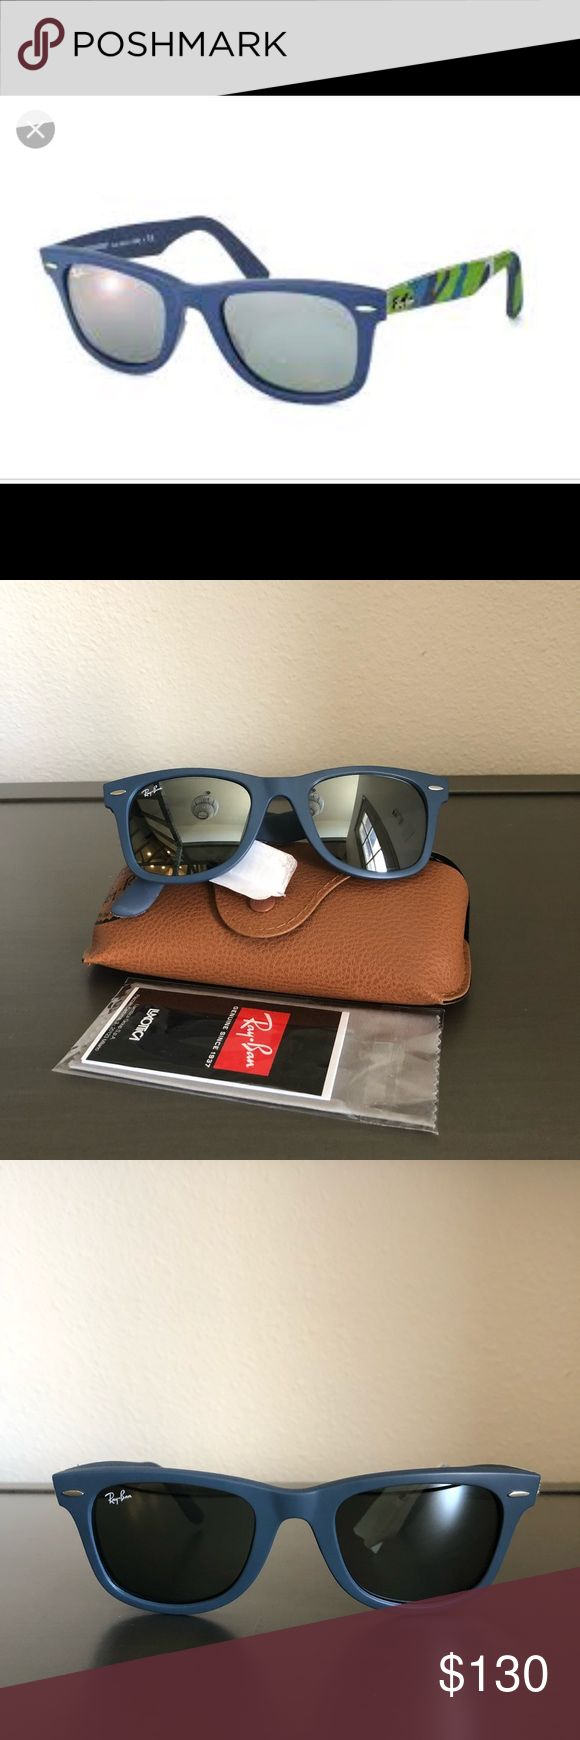 🆕Ray-Ban Wayfarer RB2140 Urban Camouflage 🆕Ray-Ban Wayfarer RB2140 Urban Camouflage NWT brand new, never been worn  Frame: Blue with fabric camo Lens: Gray Silver Mirror Size: 50mm Bridge: 22mm Temple: 150mm Ray-Ban Accessories Sunglasses